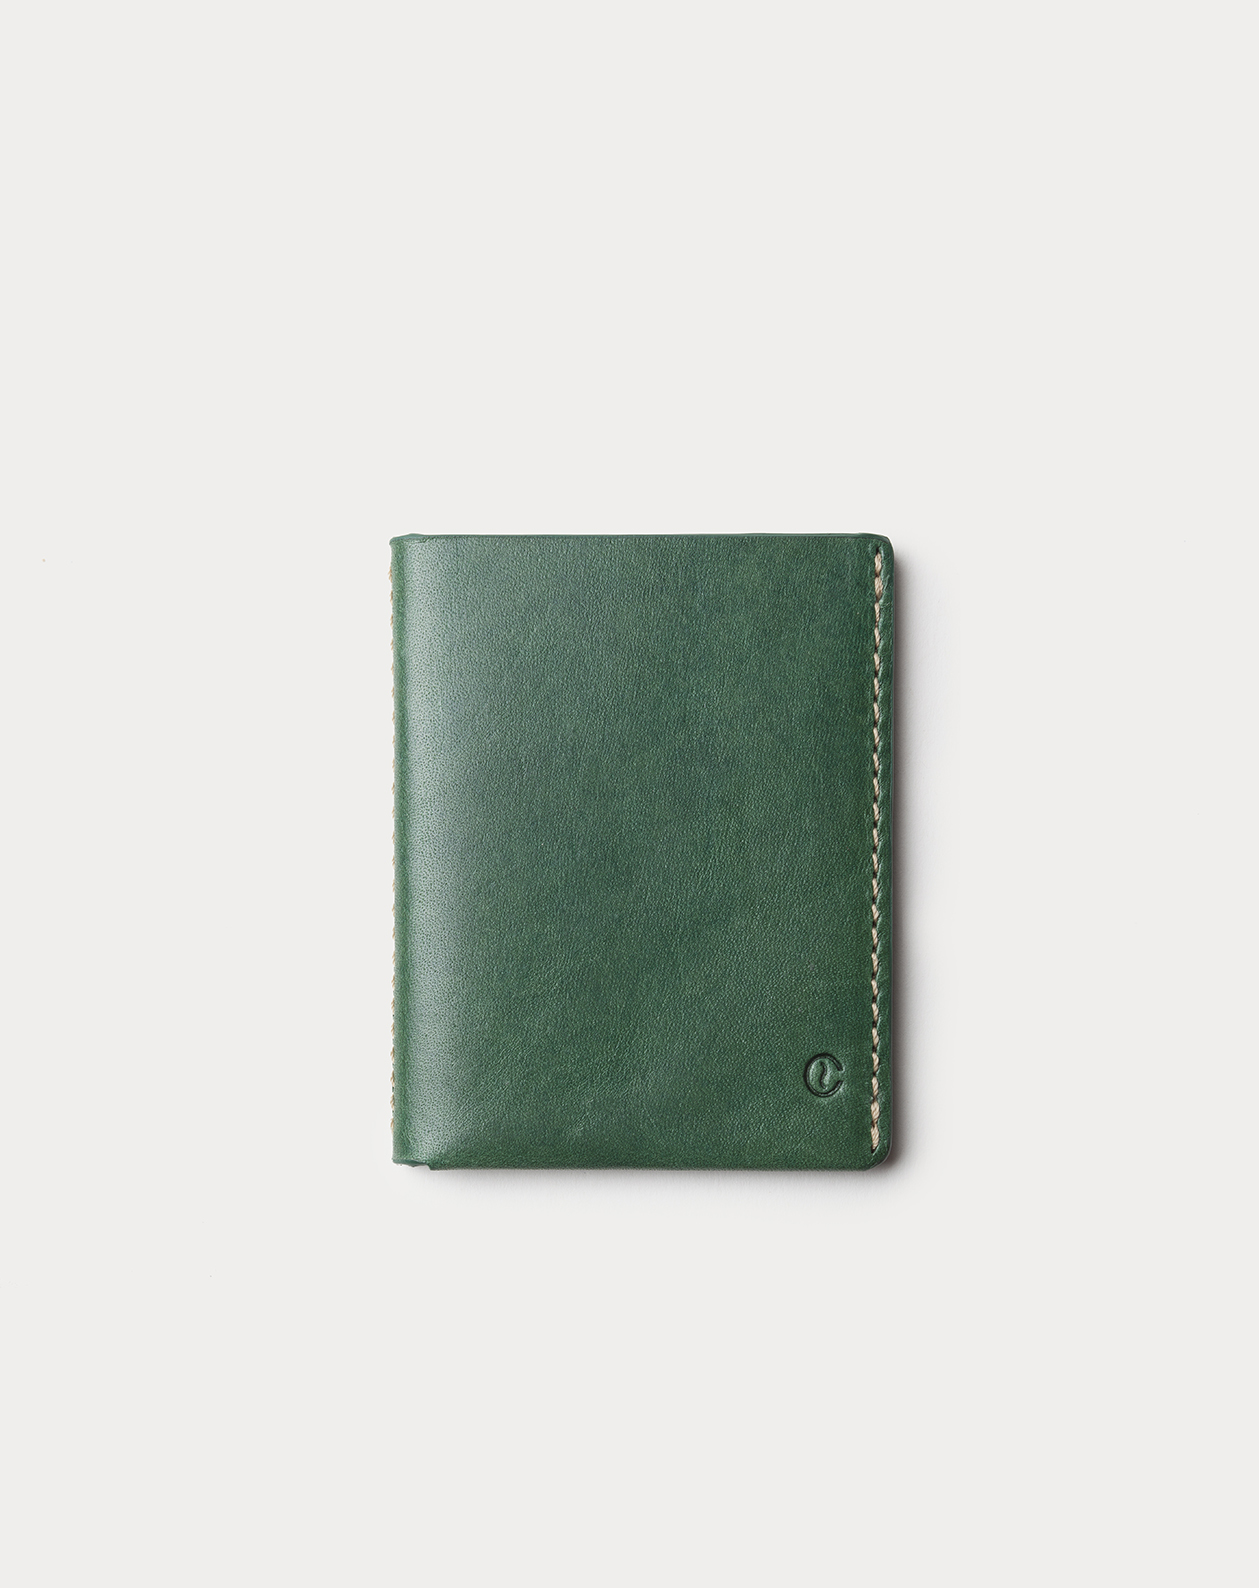 Ultra Slim Leather Wallet Jamaica Greenery